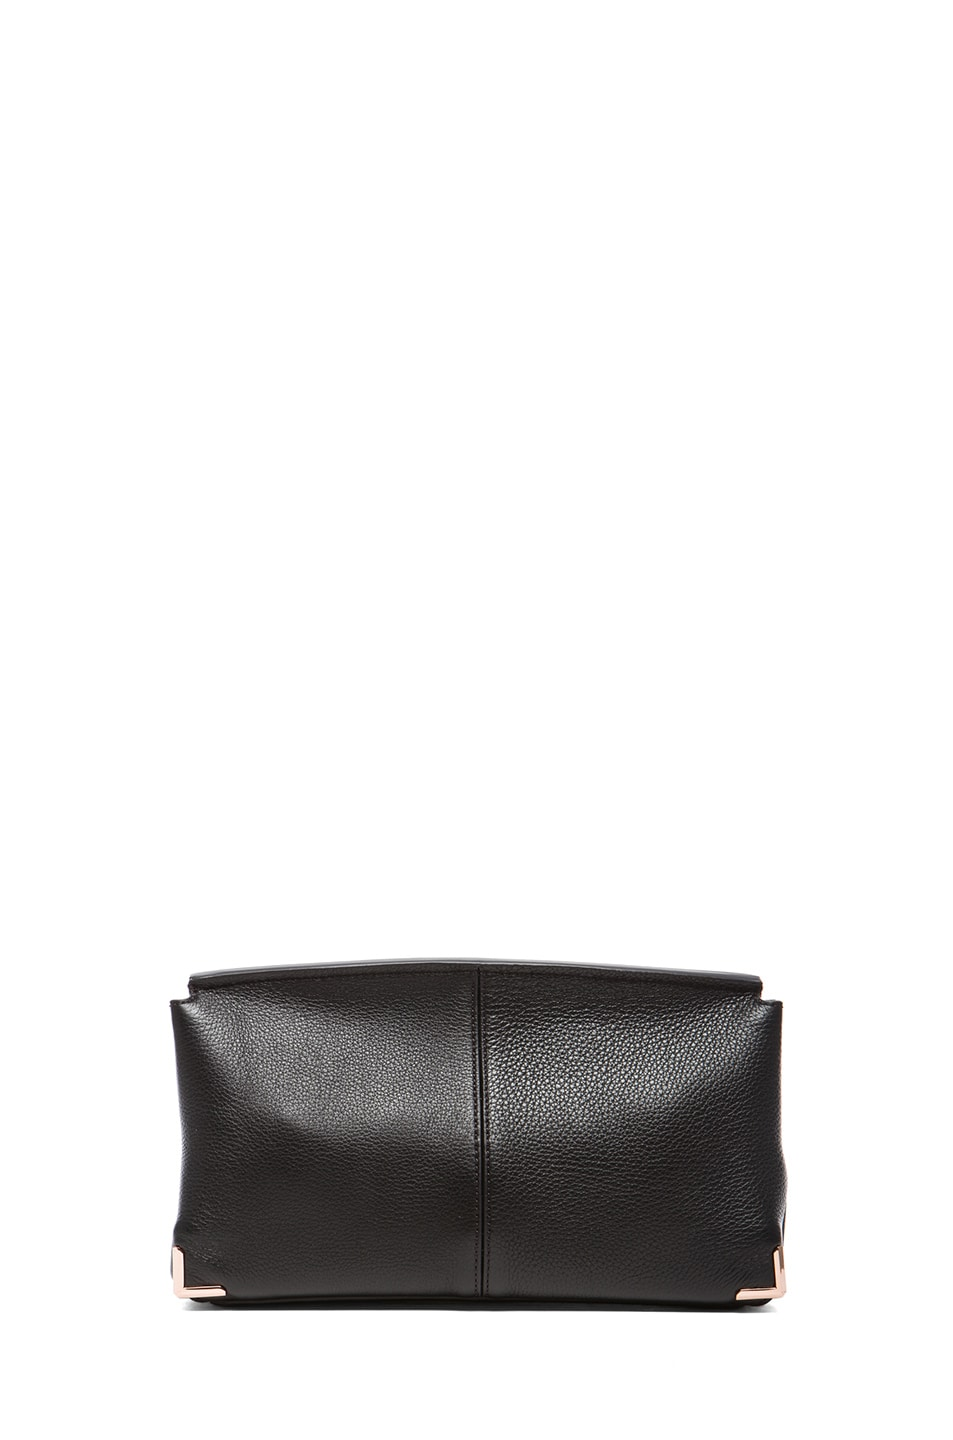 Image 2 of Alexander Wang Prisma Skeletal Clutch with Rhodium Hardware in Black